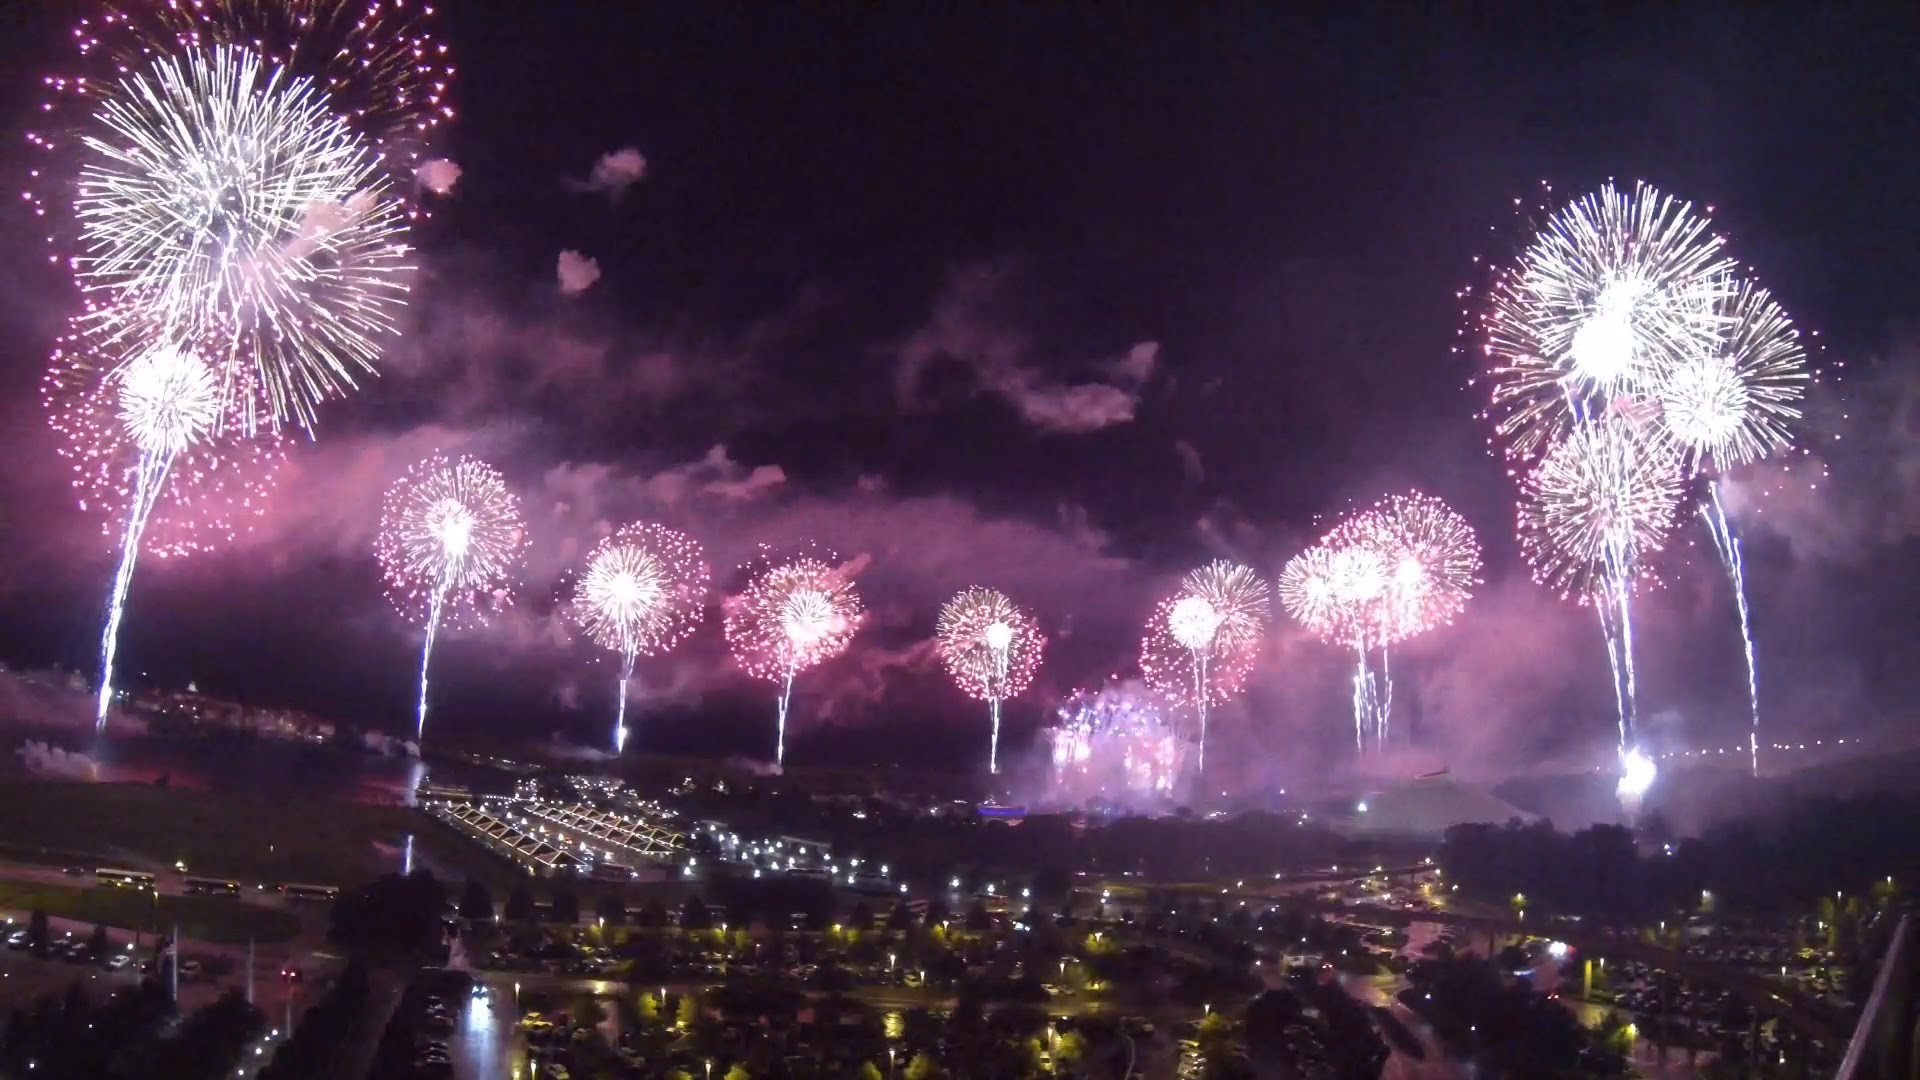 1920x1080 FULL 2015 Magic Kingdom 4th of July 360 Degree Fireworks show at Disney  World - YouTube